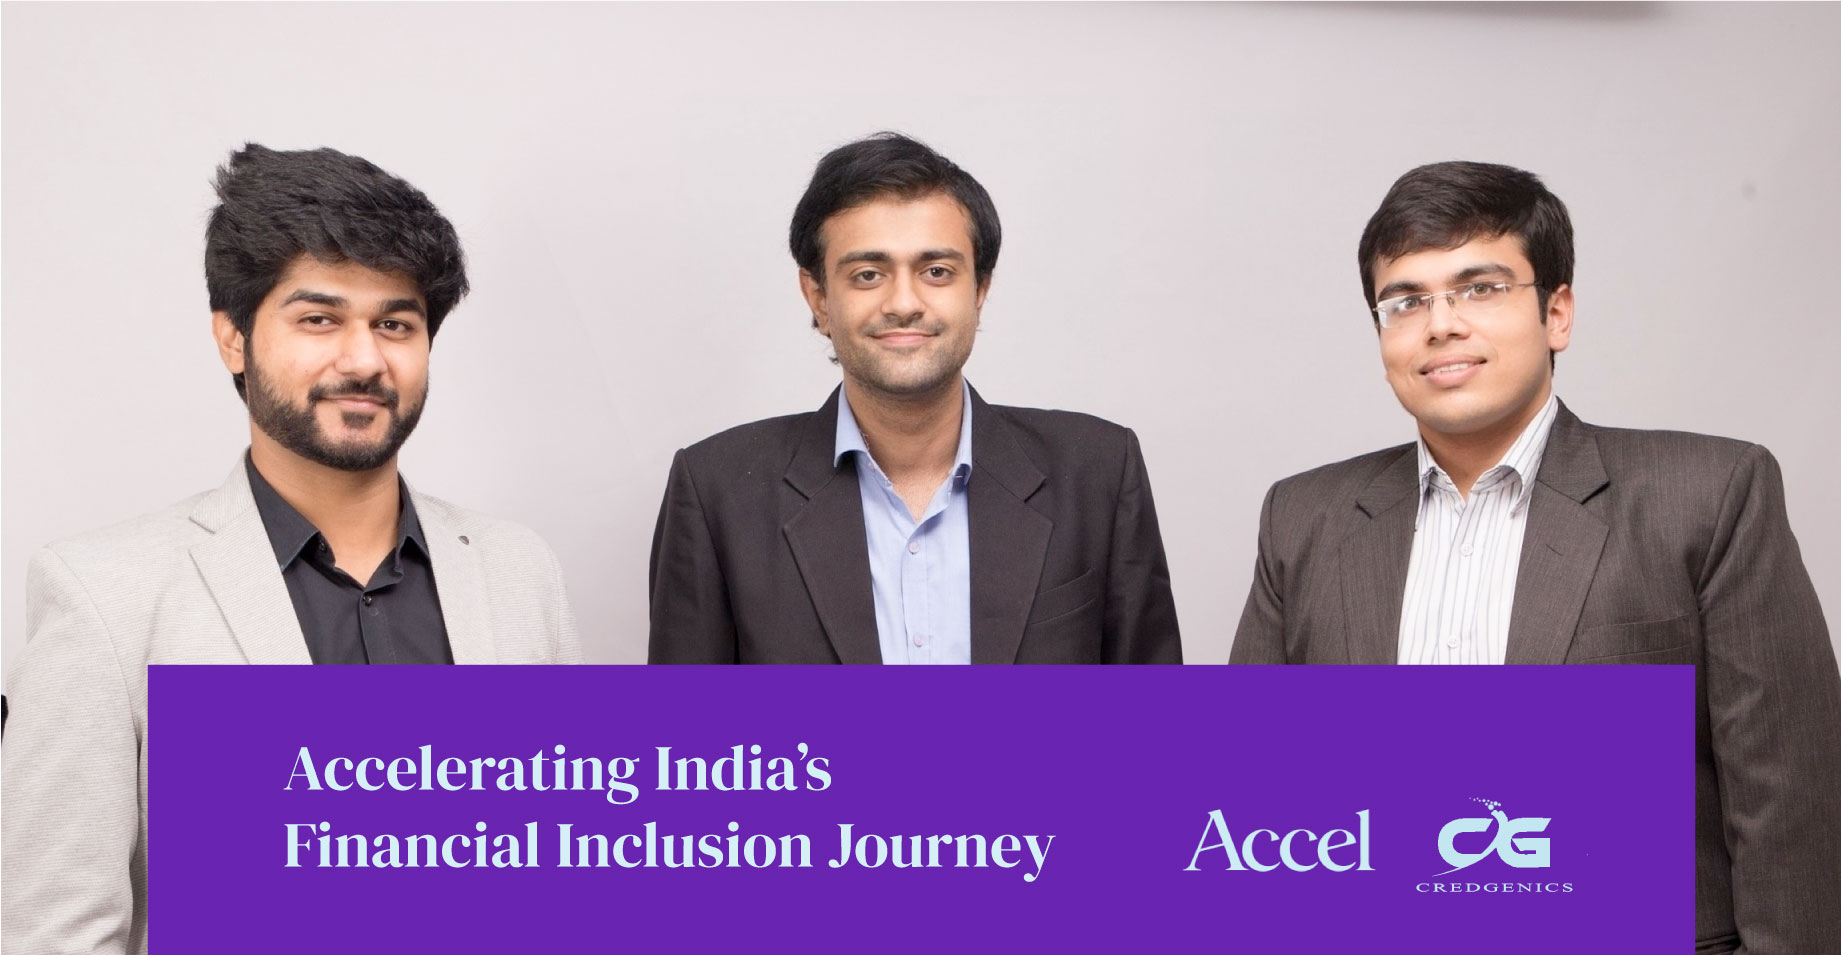 Accel partners with Credgenics to accelerate India's financial inclusion journey